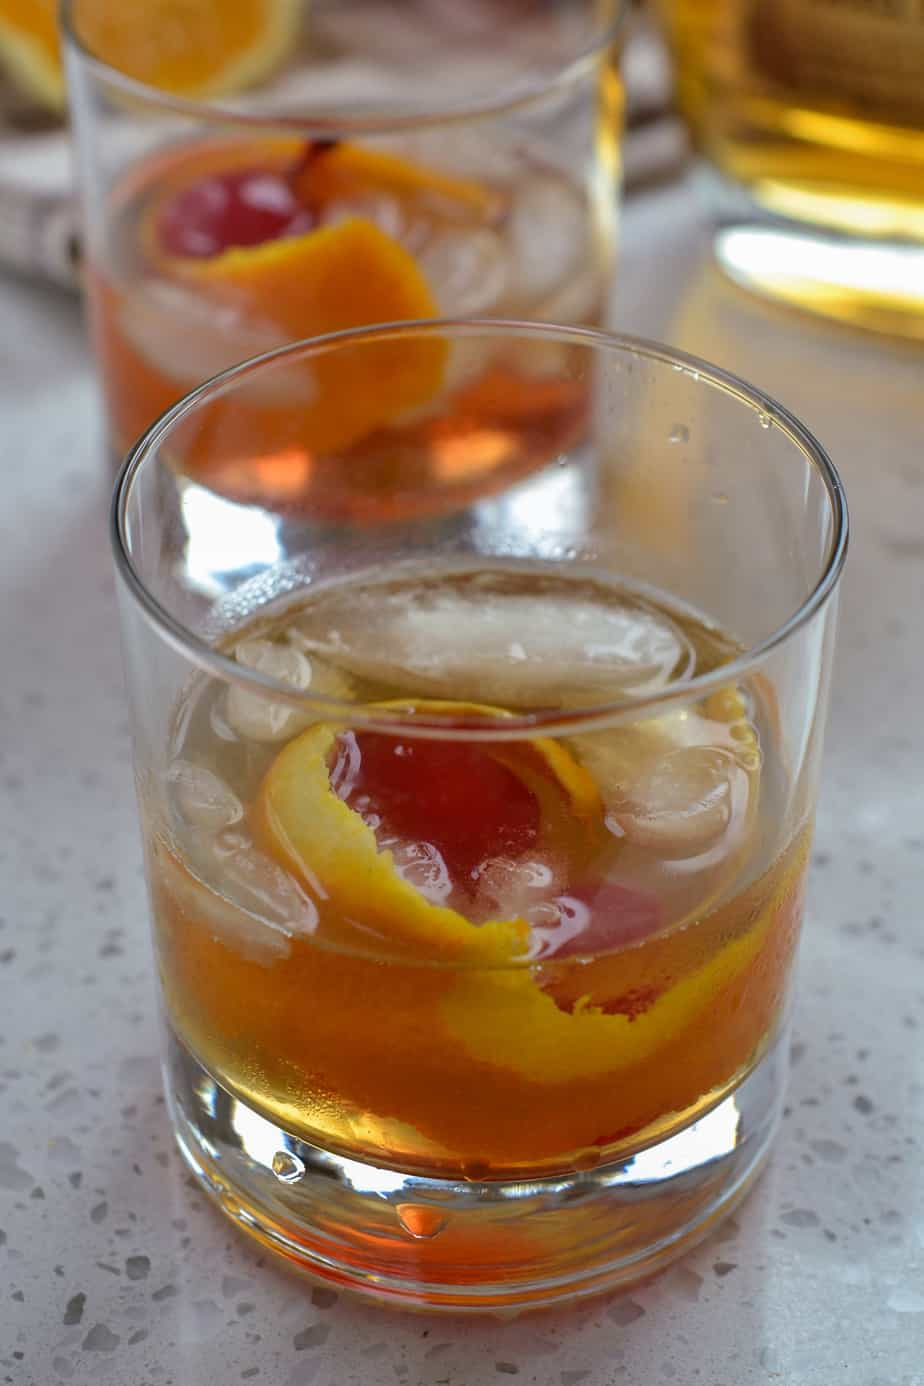 Old fashioned cocktail on ice